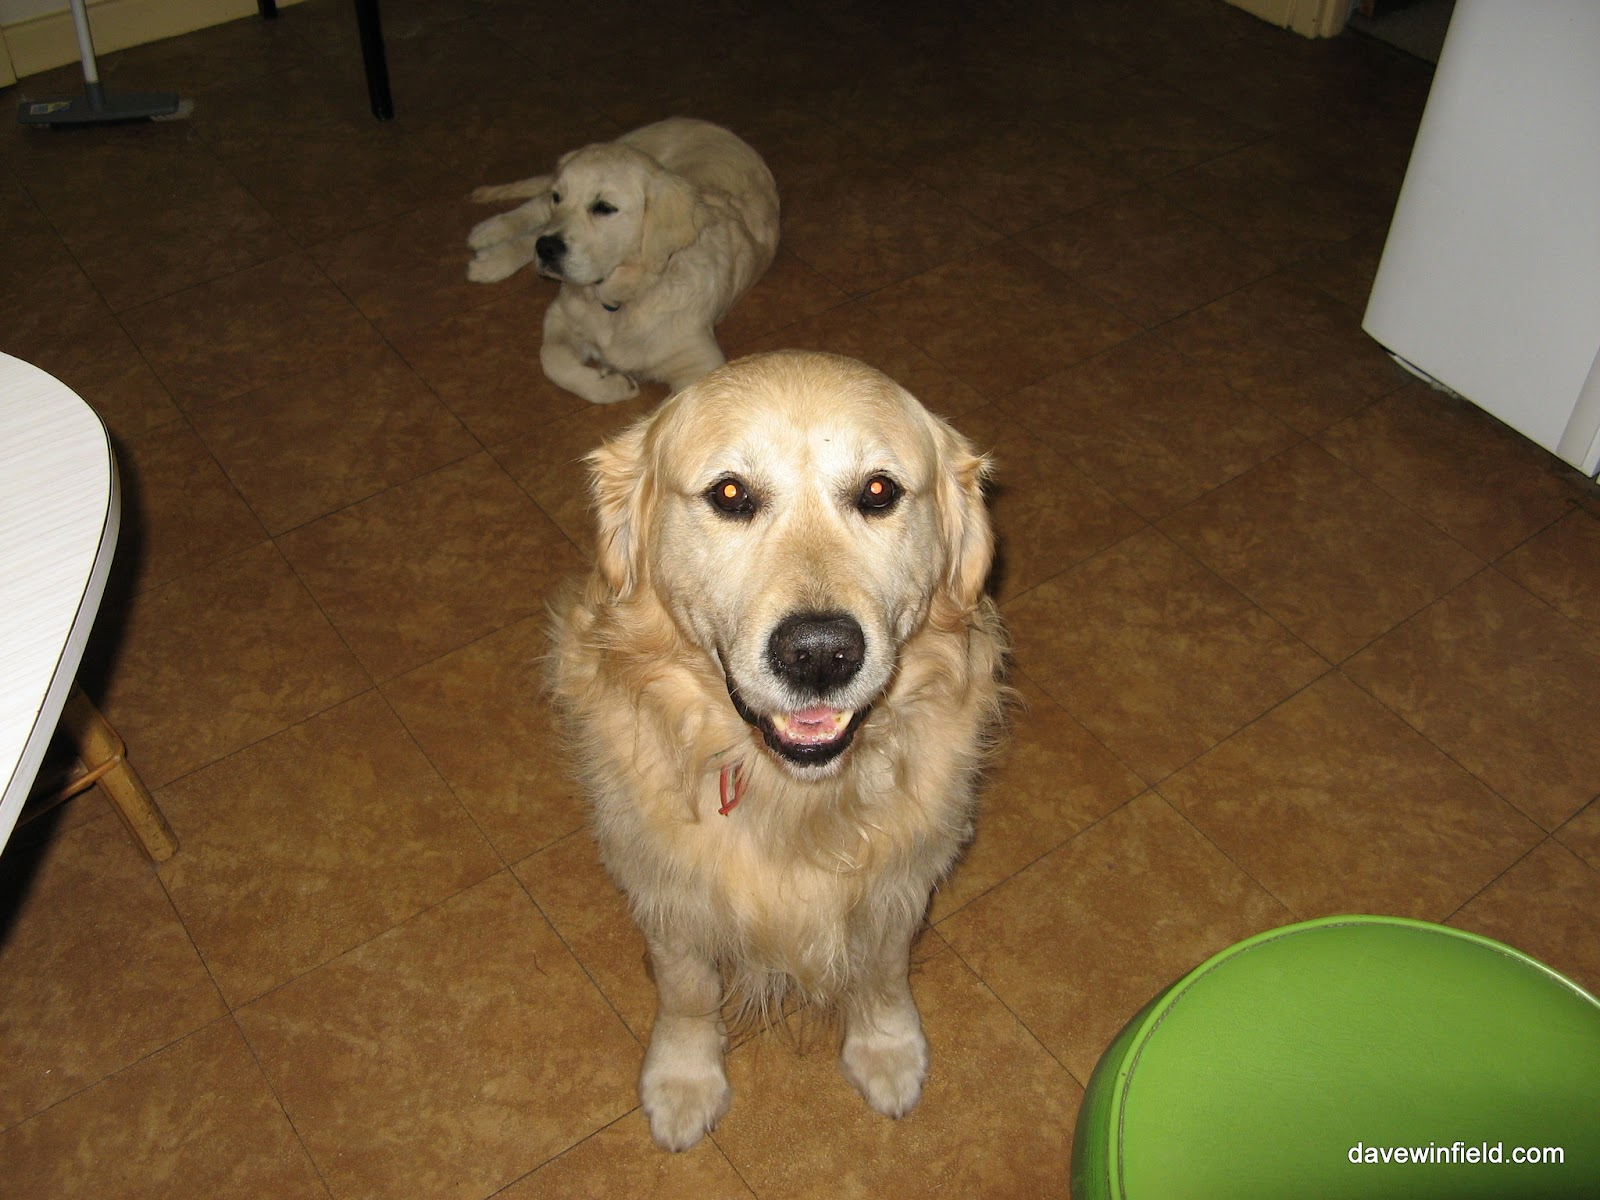 Jack in the foreground - he was ALWAYS ready to pose for a photo! And Jess in the background.